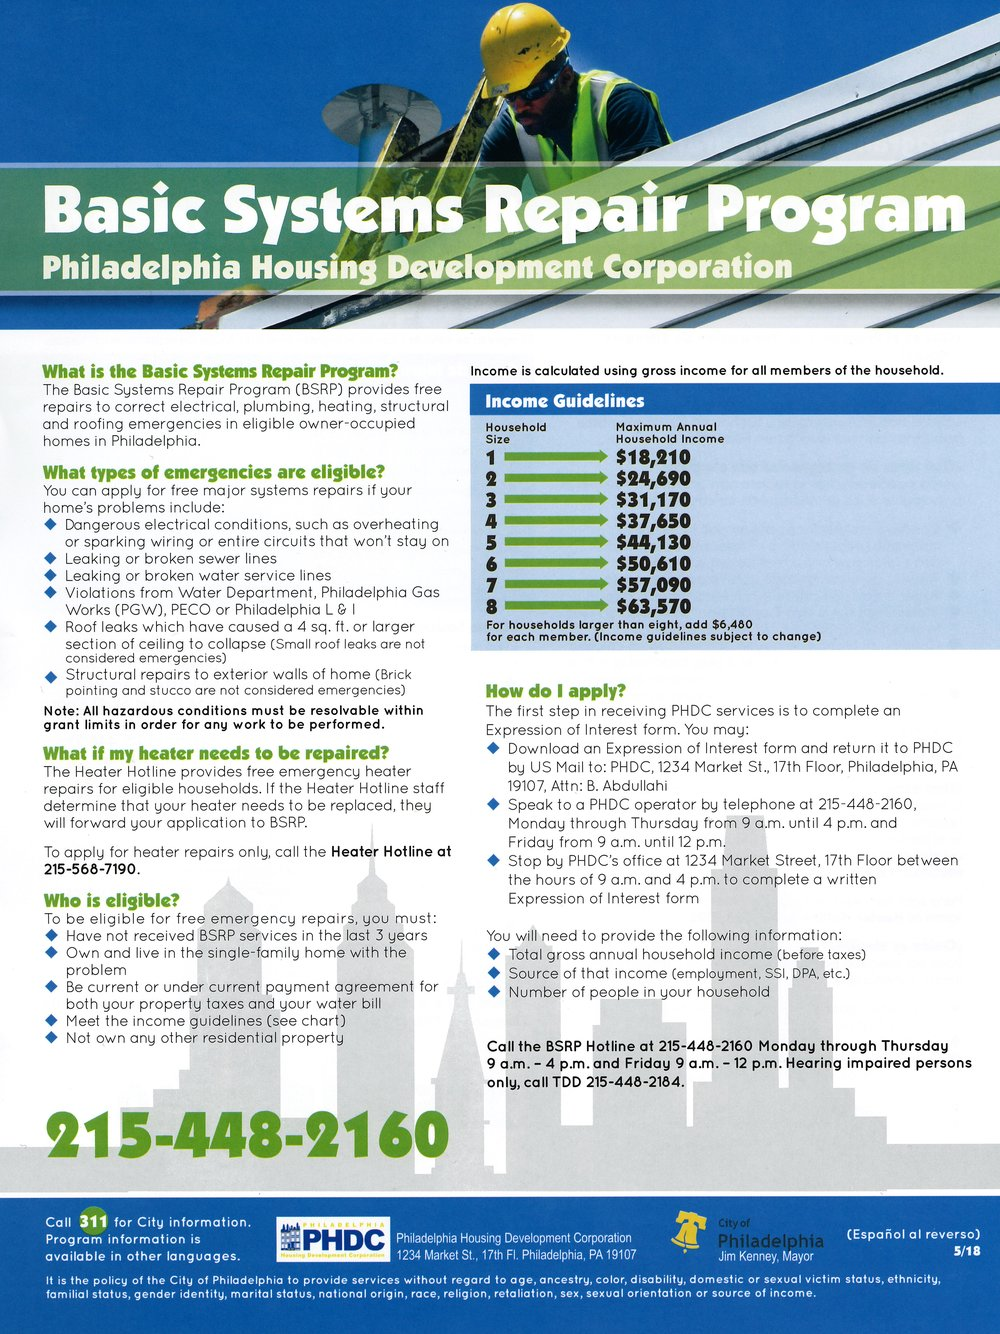 Basic system reapair program.jpg